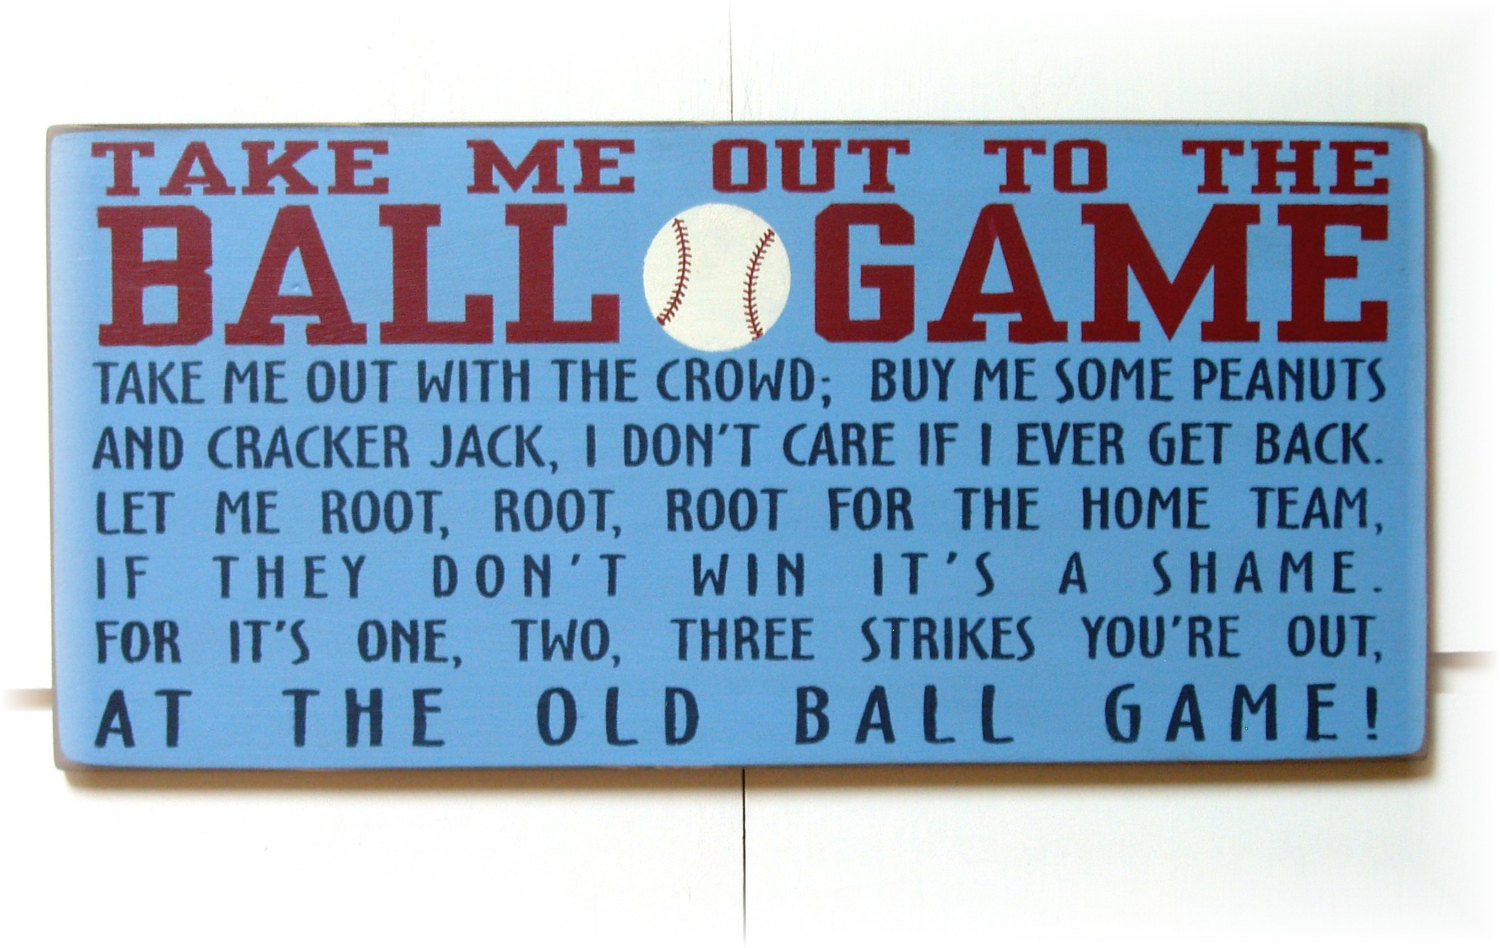 Take Me Out To the Ballgame: How singing the classic got started